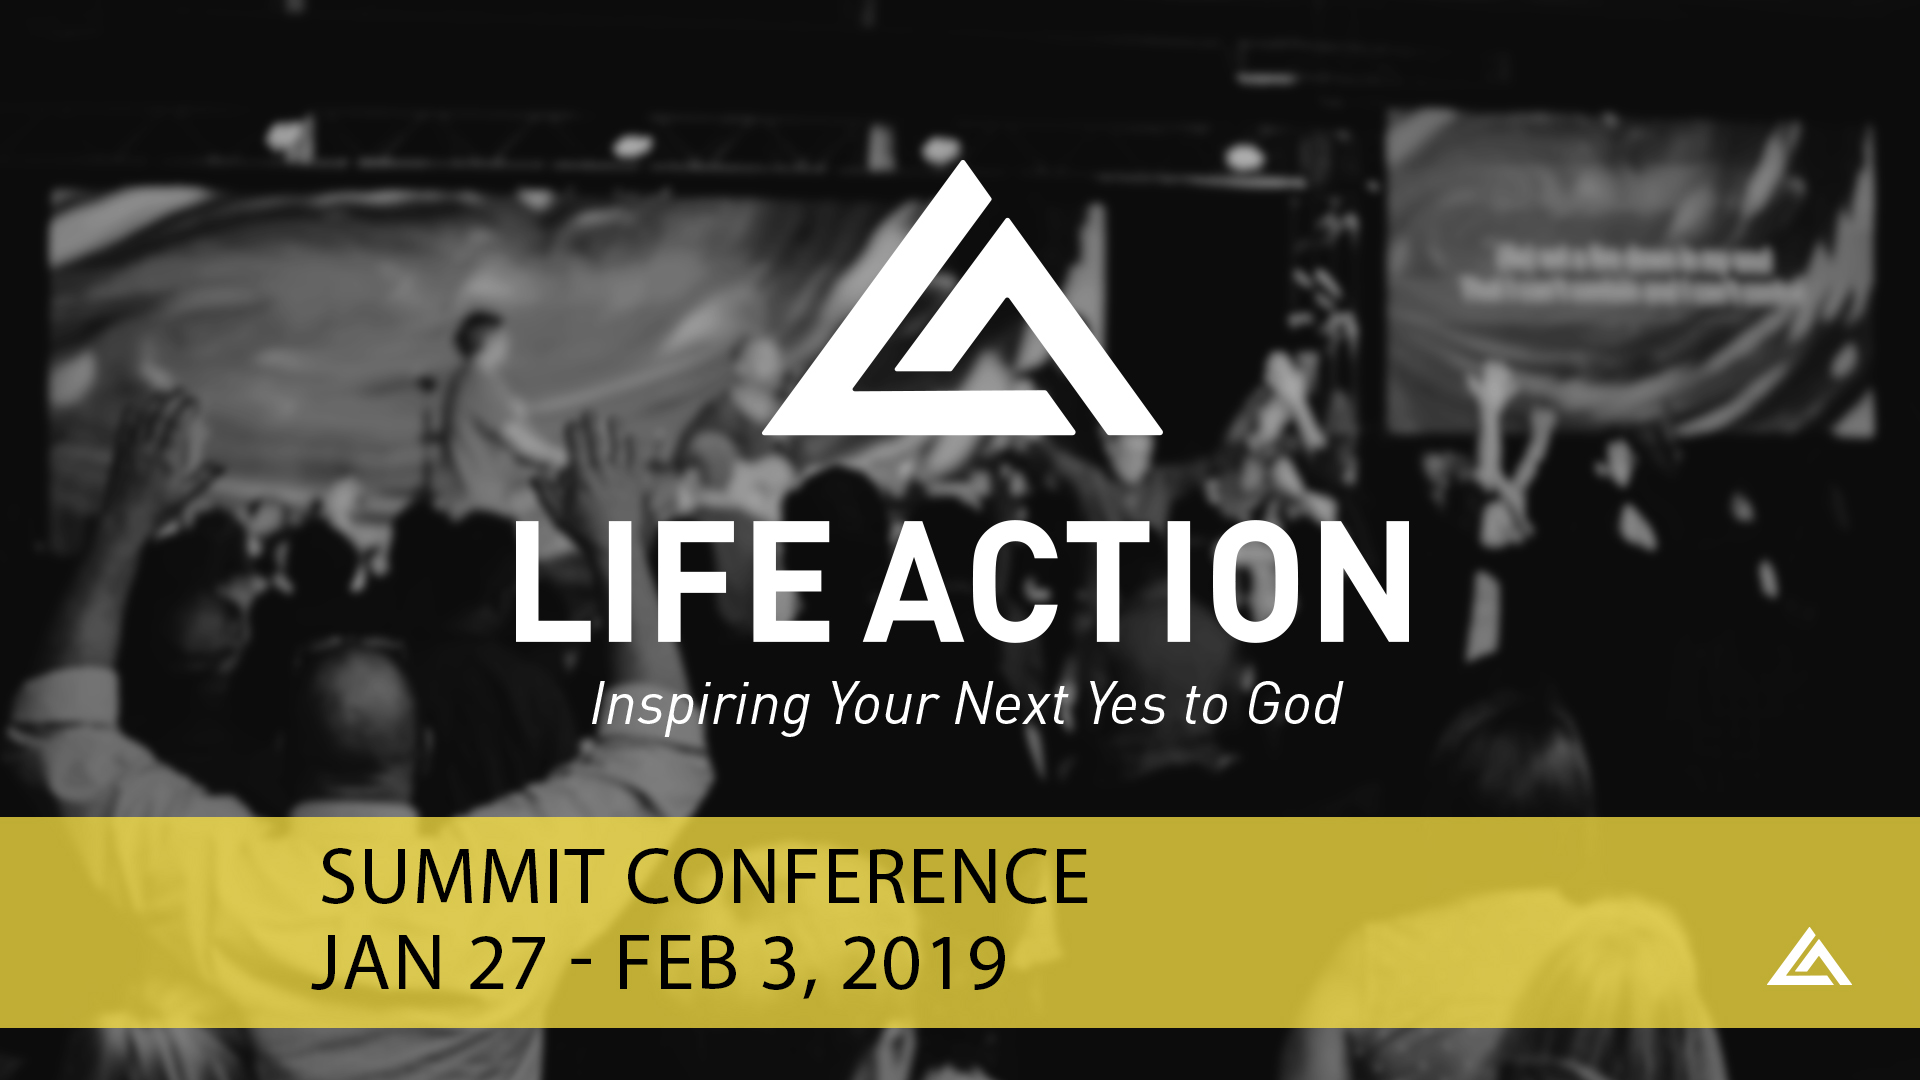 LifeAction Summit Conference.jpg